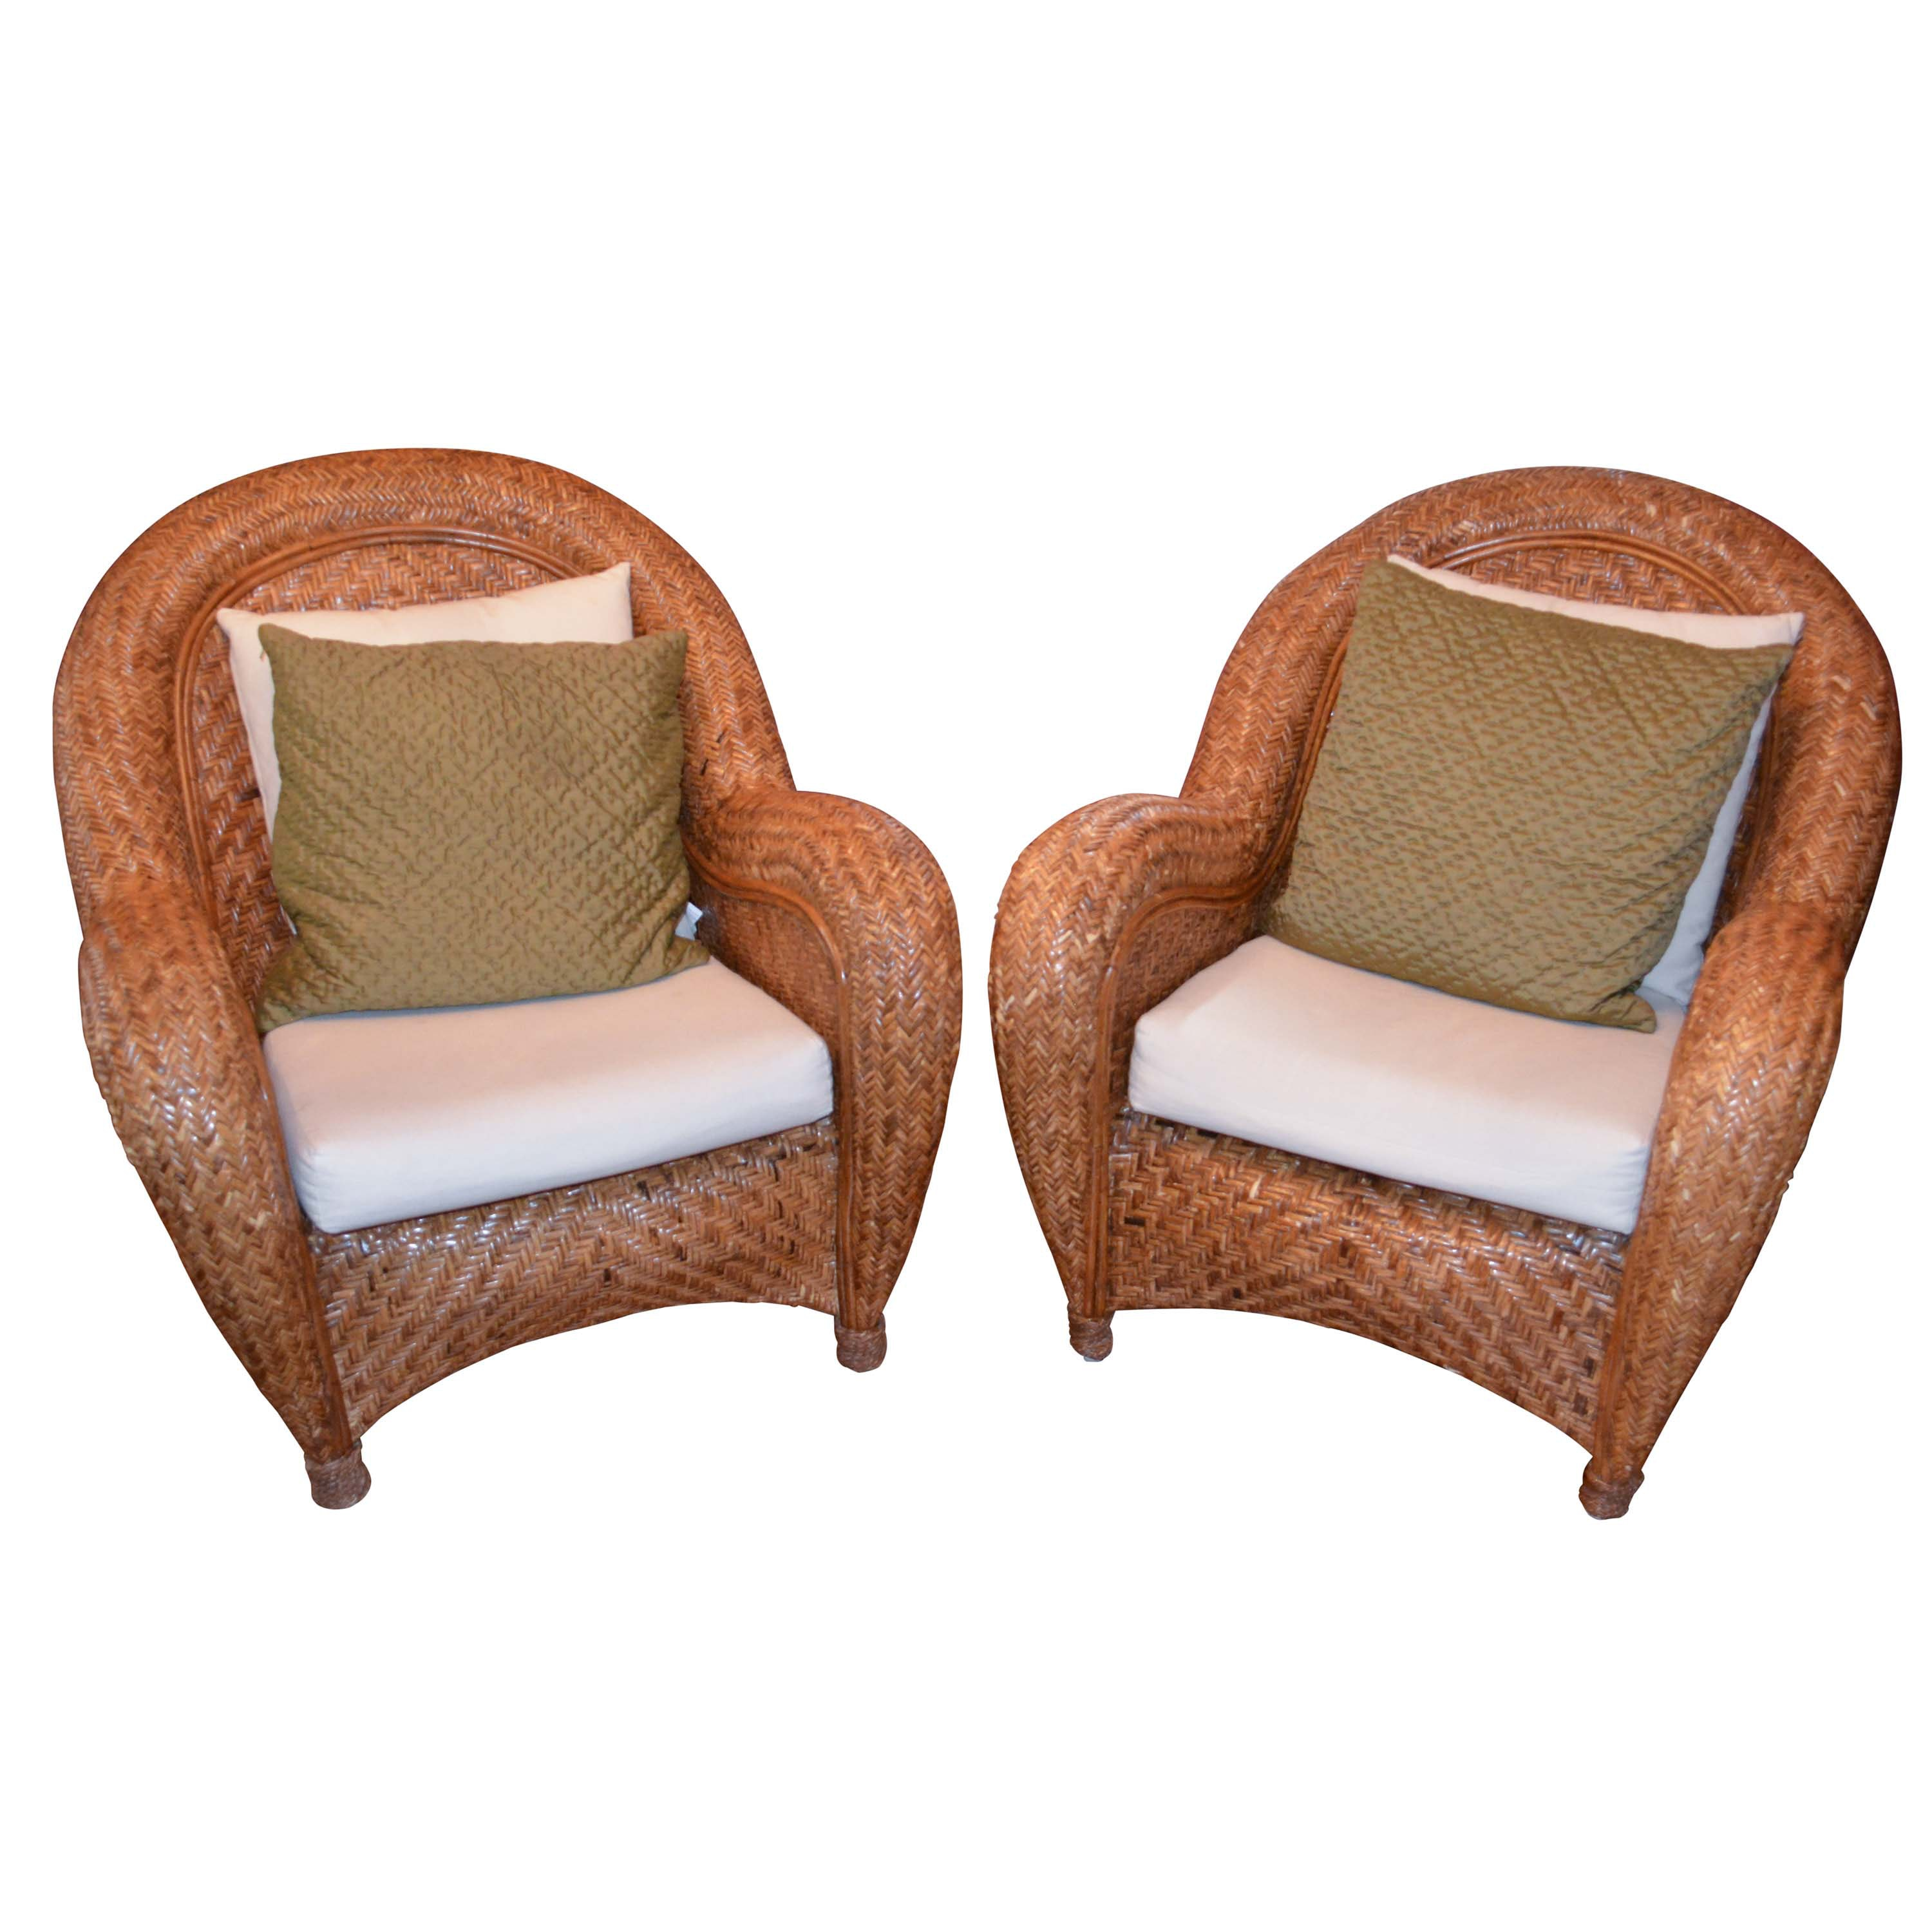 Pair Of Rattan Chairs With Four Pottery Barn Pillows  Pottery Barn Rattan Chair S88